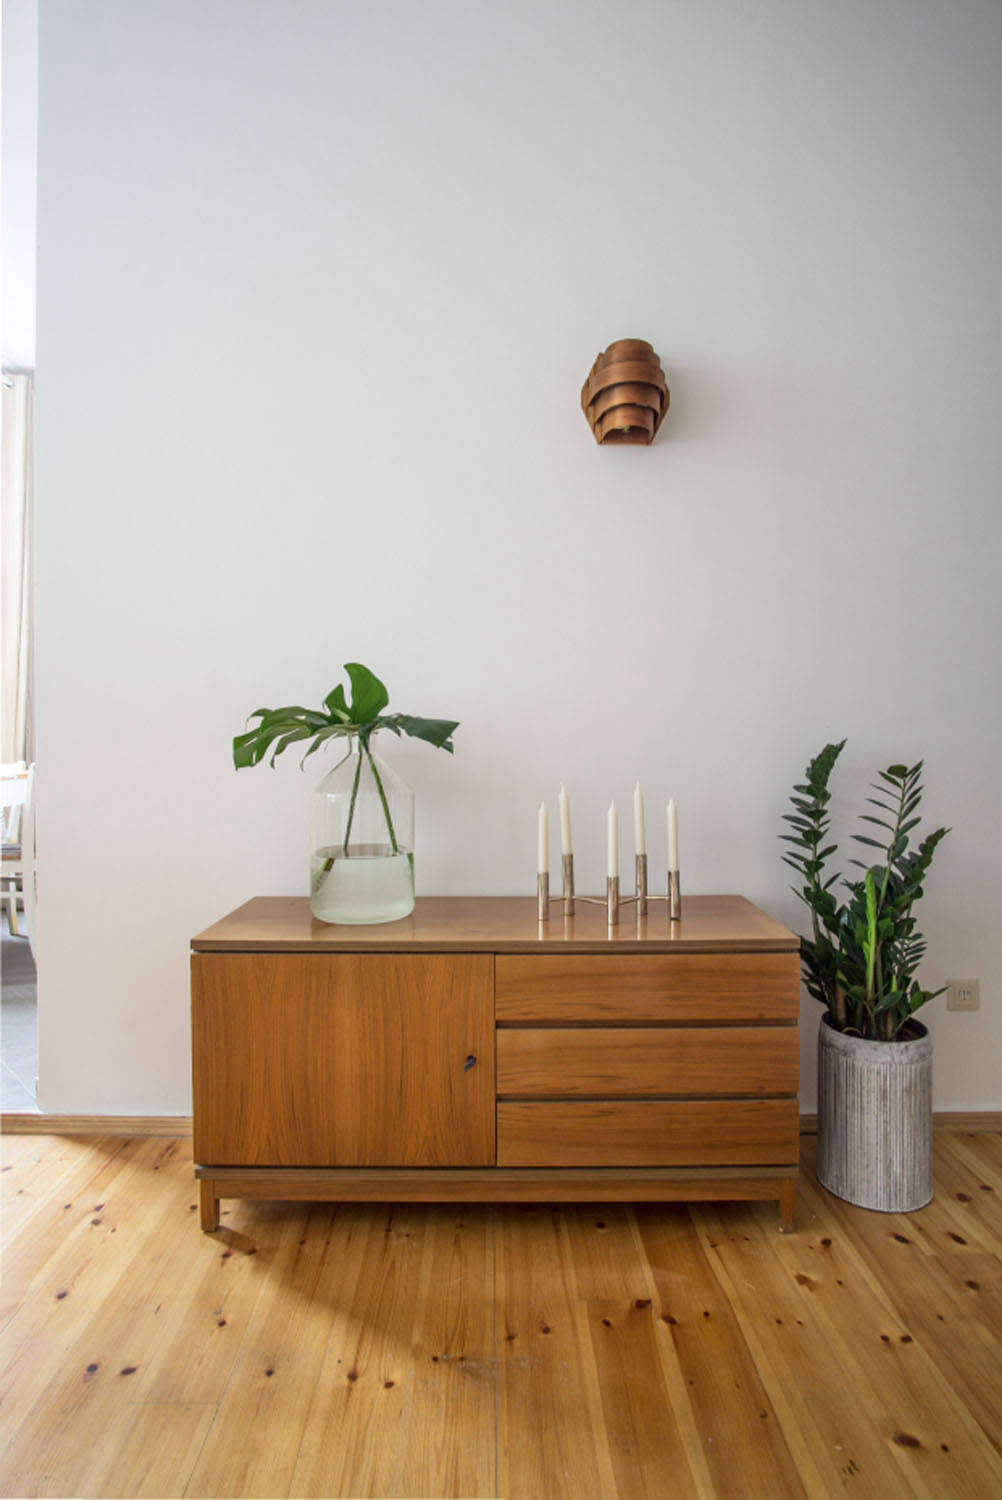 Ninety percent of the furniture is from antiques and vintage stores. Here, a wood wall sconce found in a Kreuzberg shop, a cabinet bought from an online antiques dealer, and a vase and candleholder from the local flea coexist harmoniously.